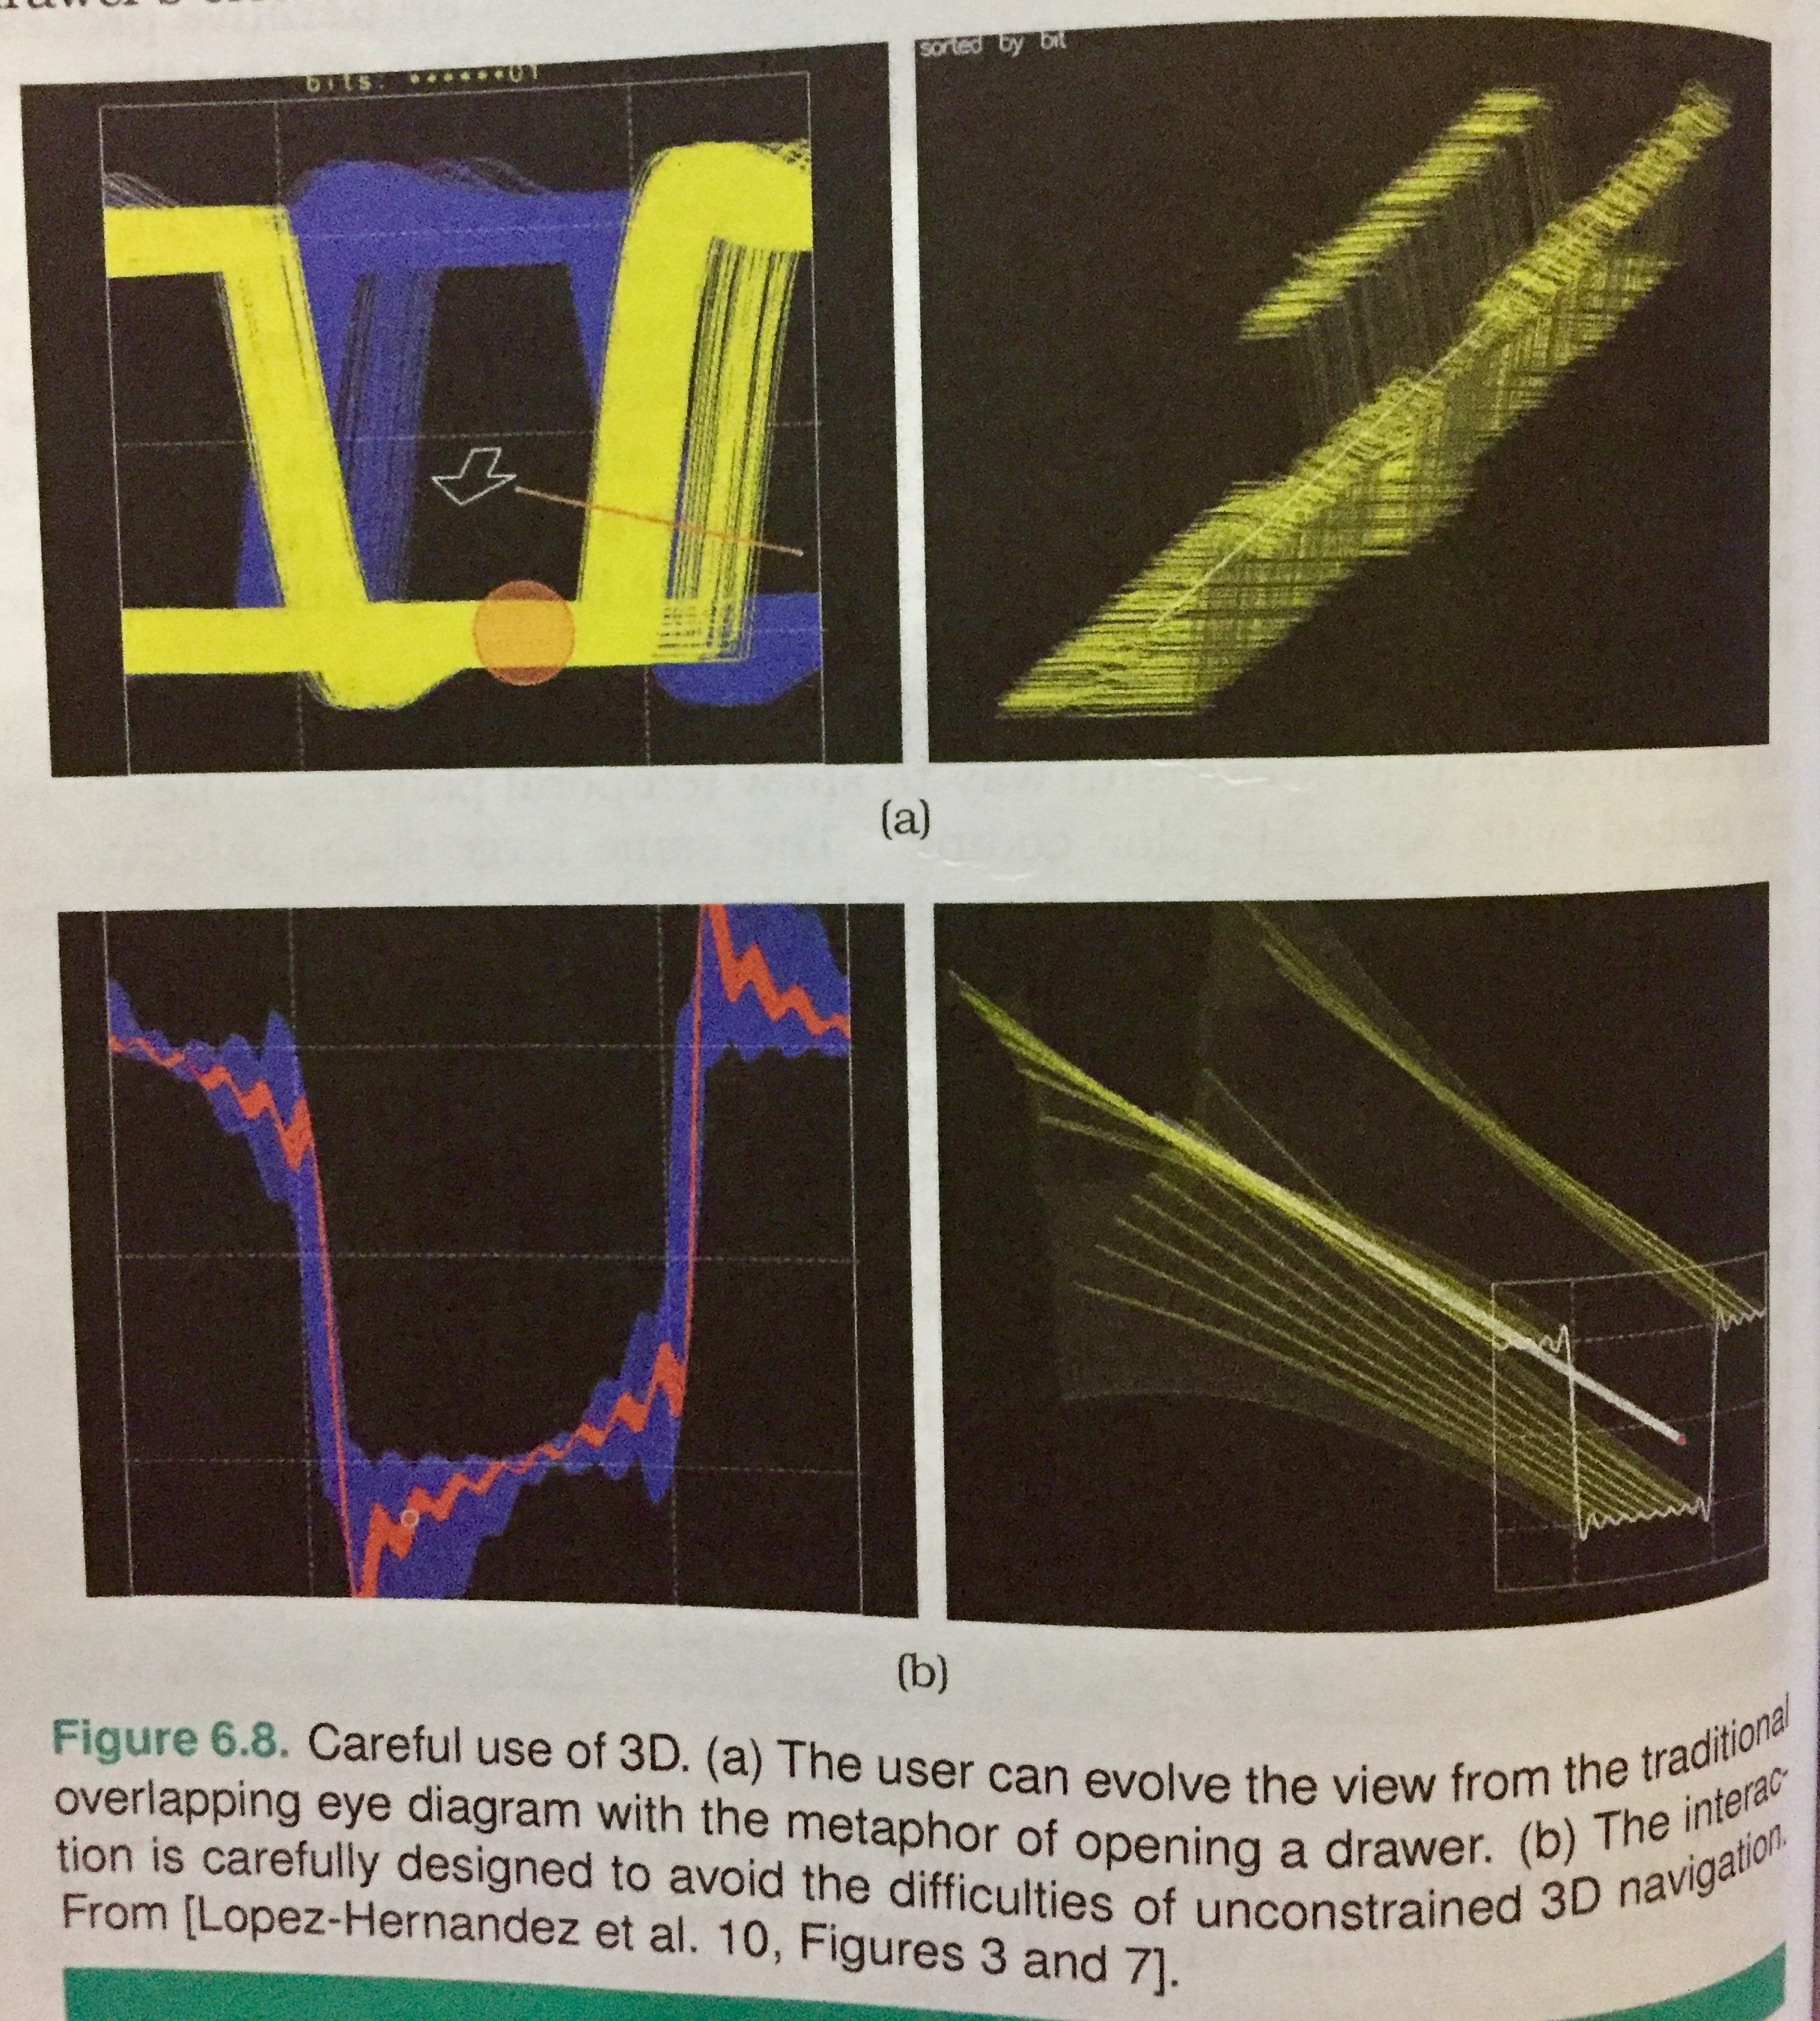 Example of 3D visualization of abstract data that works well.  From Tamara Munzner's book Visualization Analysis & Design.